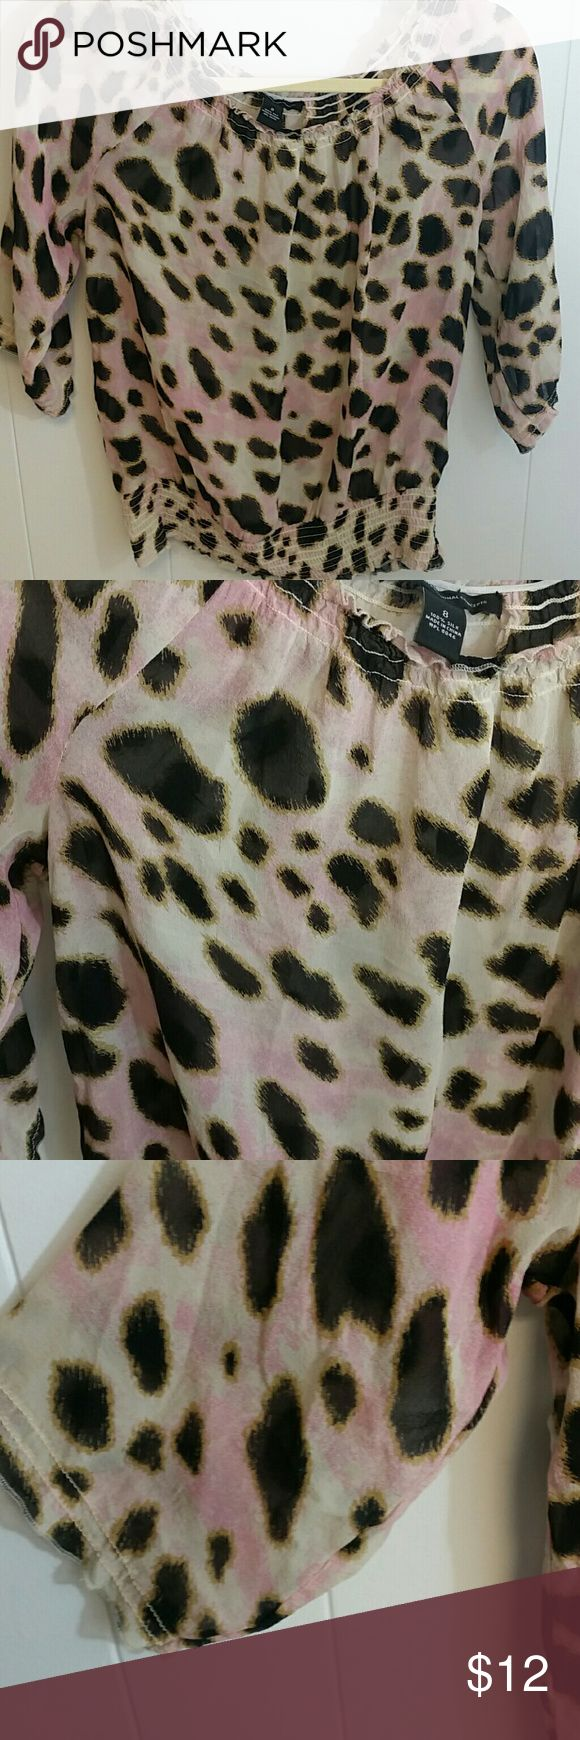 INC see through blouse Pink, black and tan cheetah print blouse. See through. Would need to wear a tank under it. Flattering on. Made with 100% silk INC International Concepts Tops